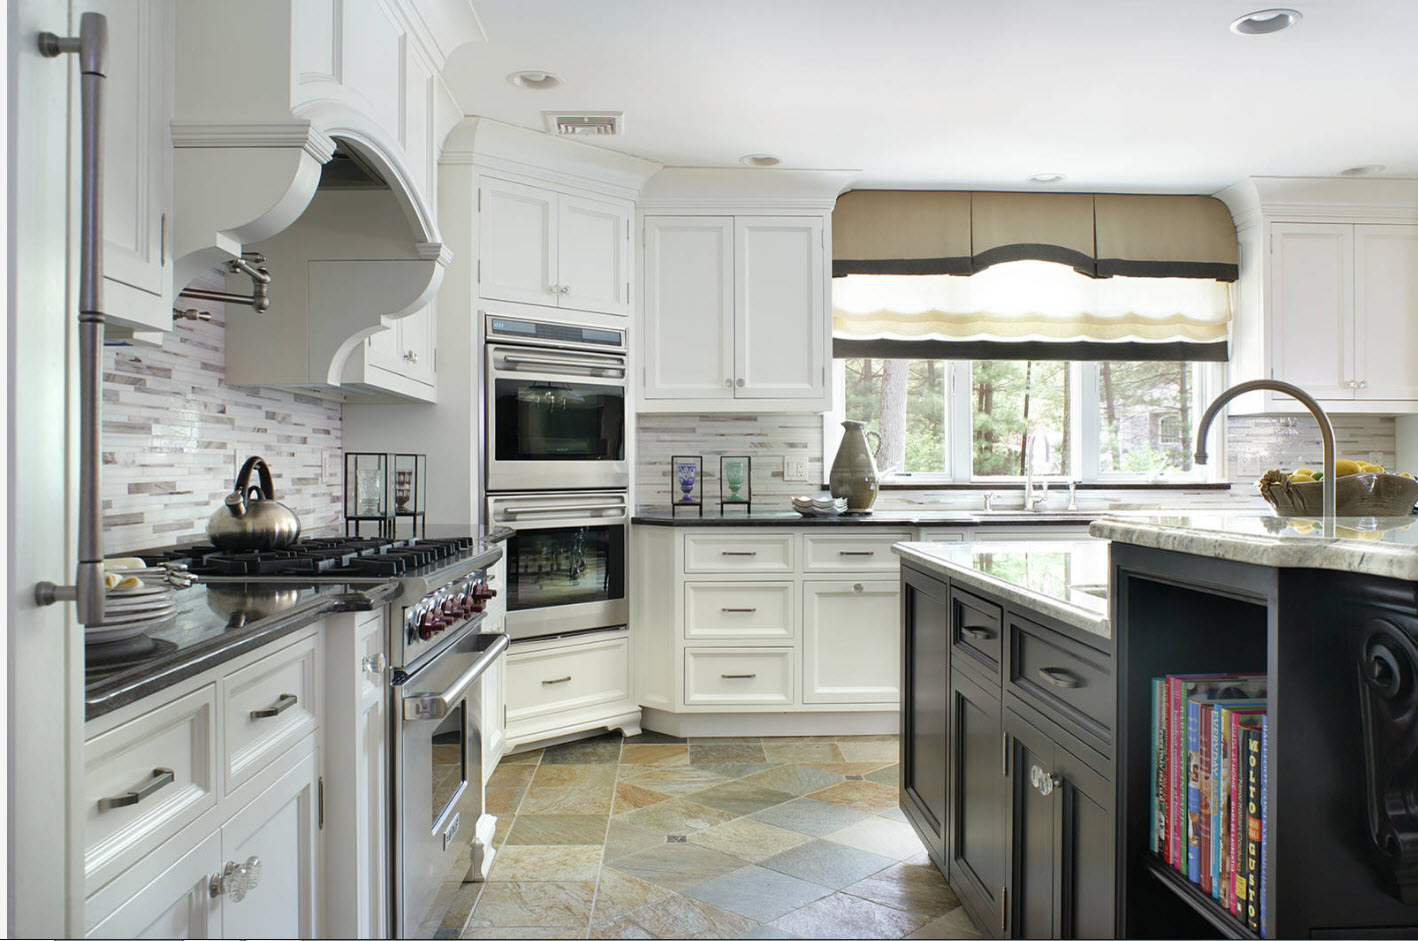 Rich classic kitchen interior in white with multifunctional angle